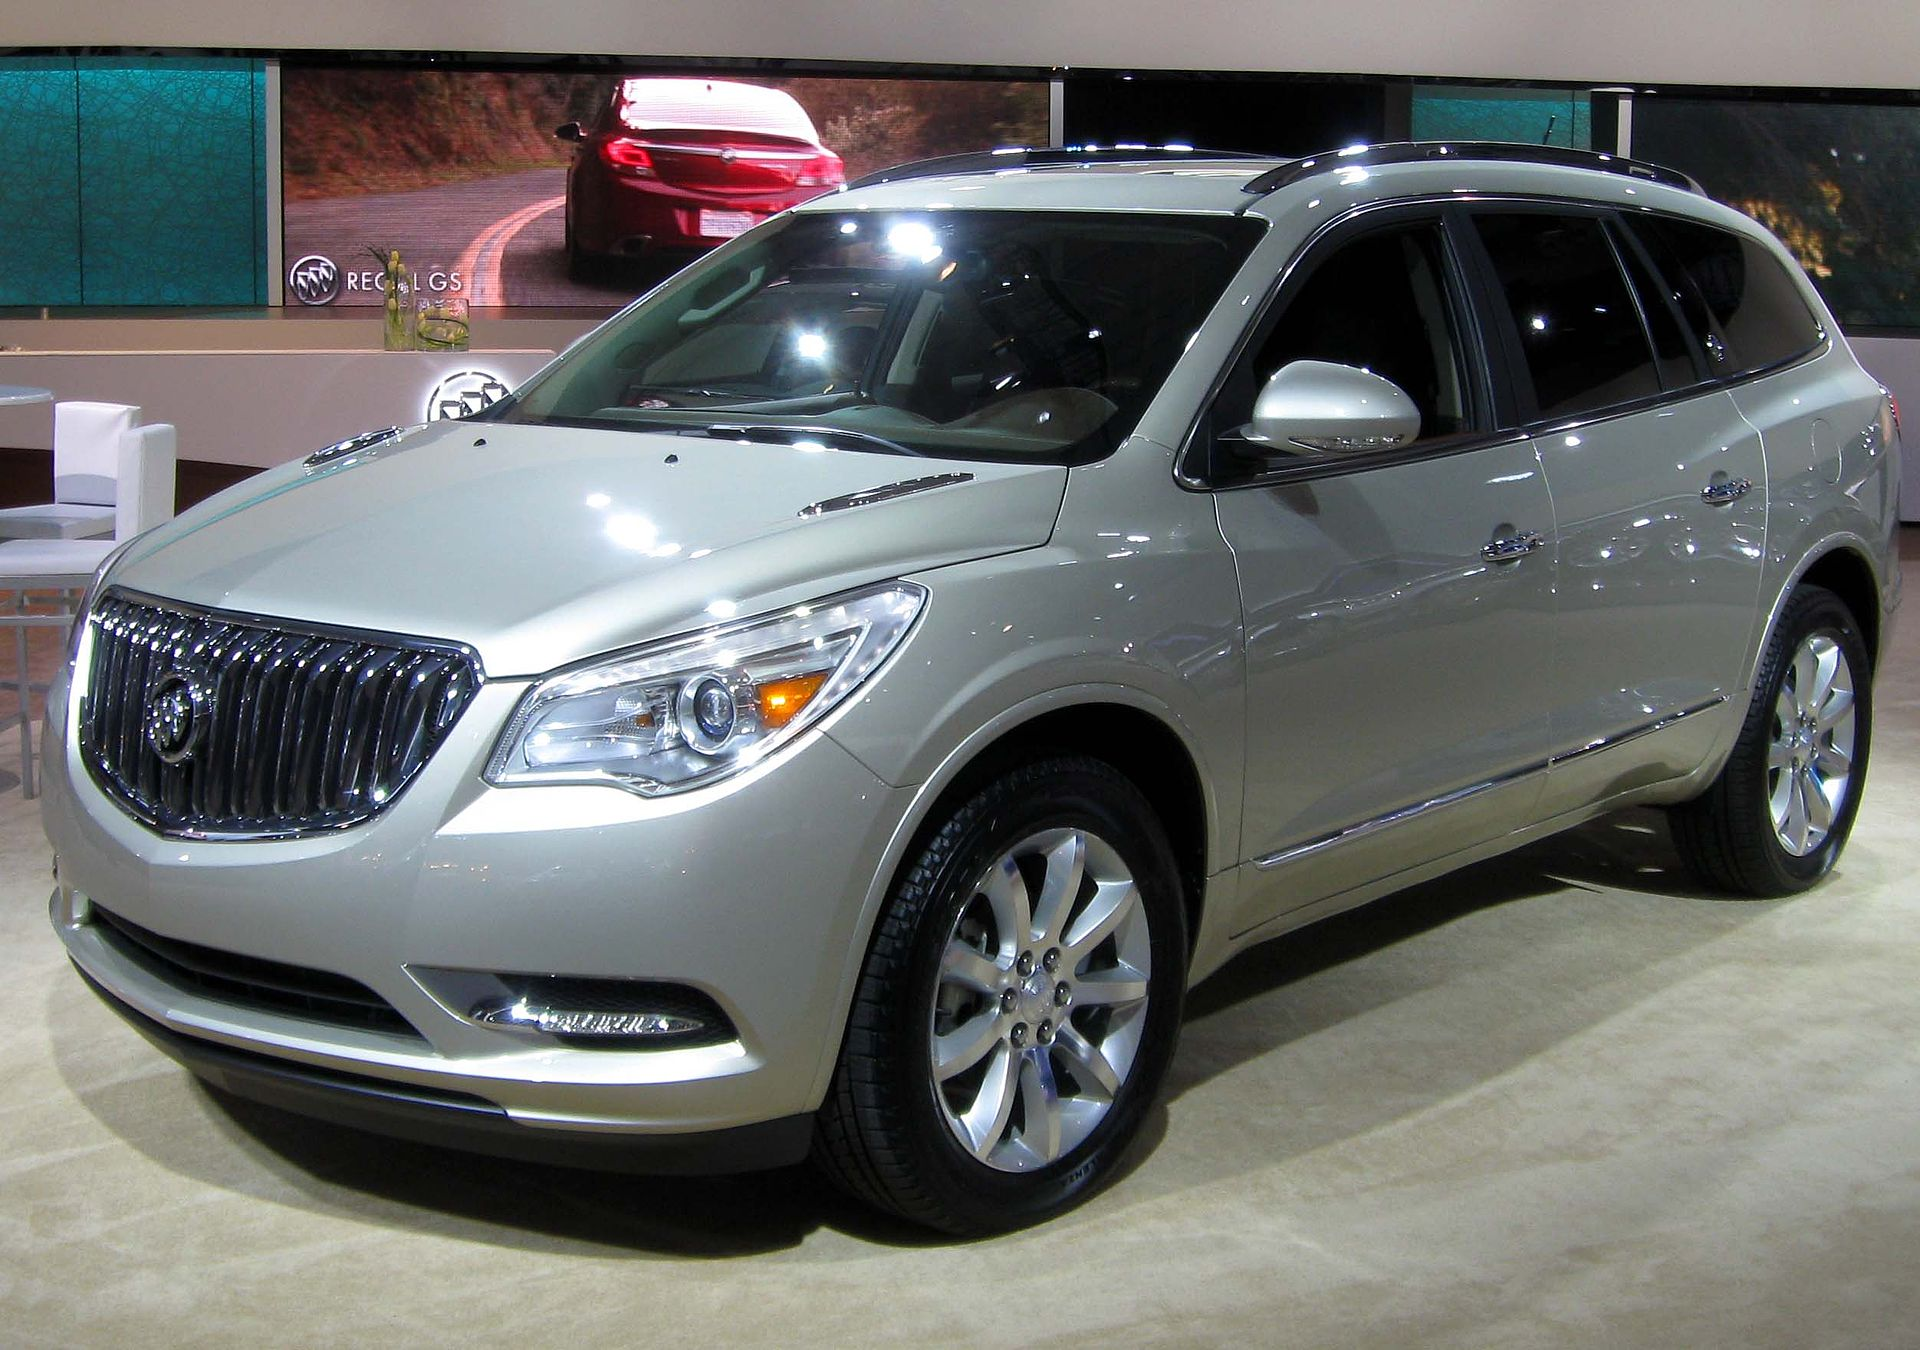 Buick Enclave - Wikipedia